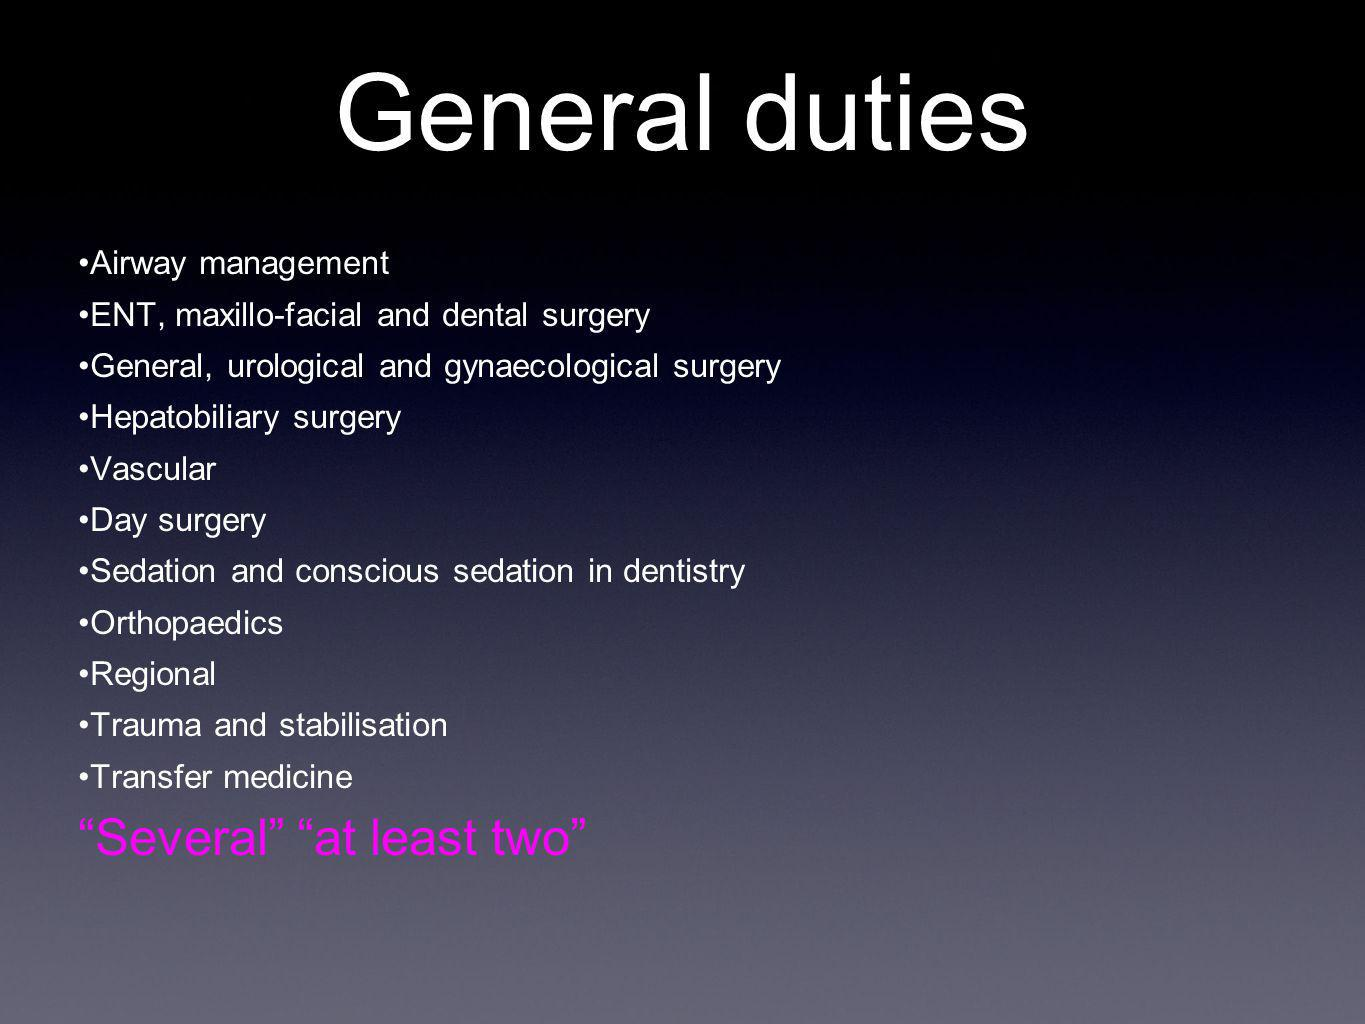 General duties Airway management ENT, maxillo-facial and dental surgery General, urological and gynaecological surgery Hepatobiliary surgery Vascular Day surgery Sedation and conscious sedation in dentistry Orthopaedics Regional Trauma and stabilisation Transfer medicine Several at least two